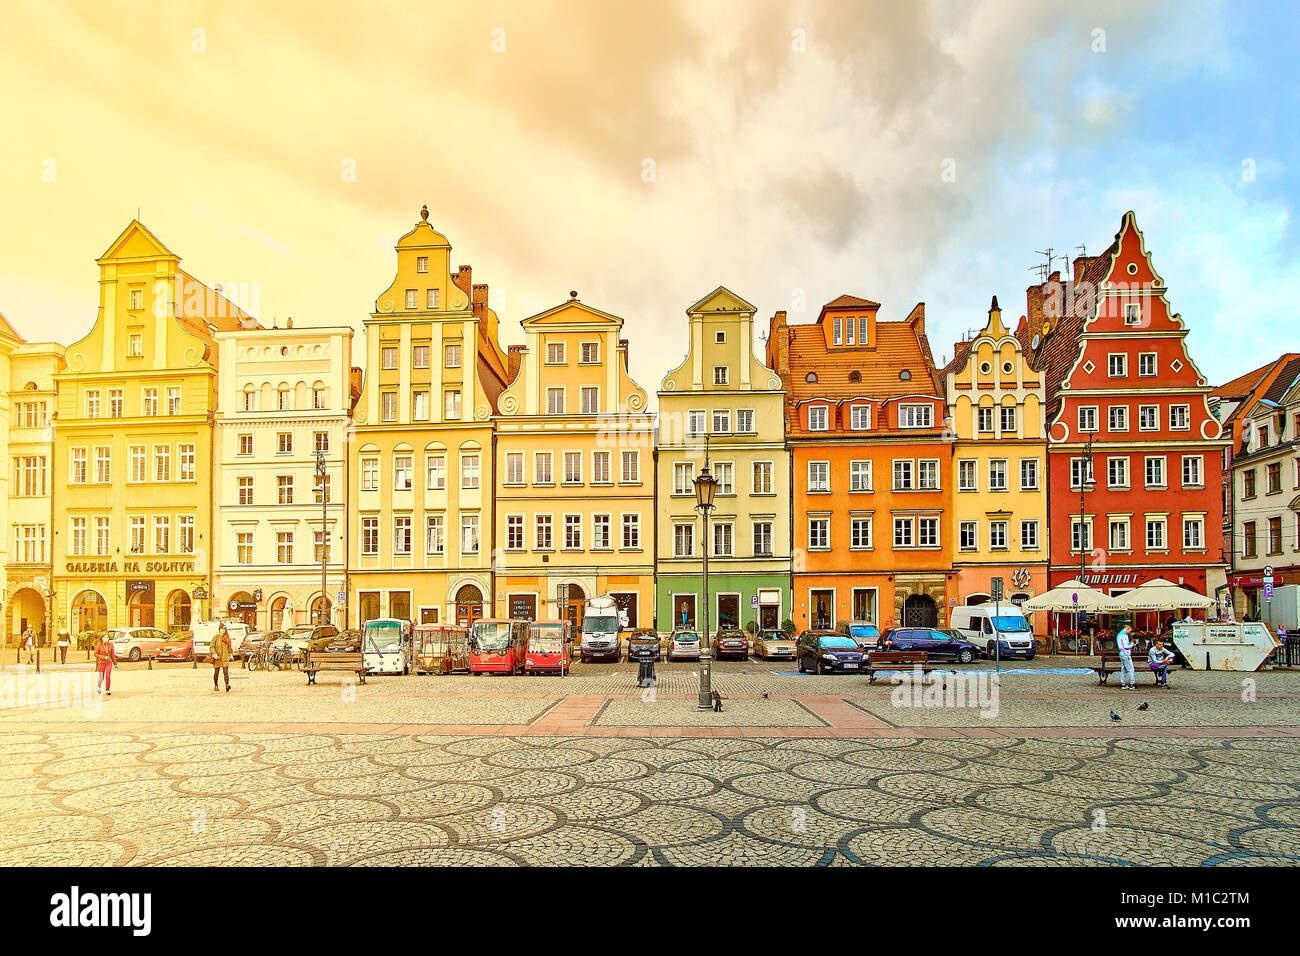 Fantastic view of the ancient homes on a sunny day. Gorgeous picture and picturesque scene. Location famous Market - Stock Image